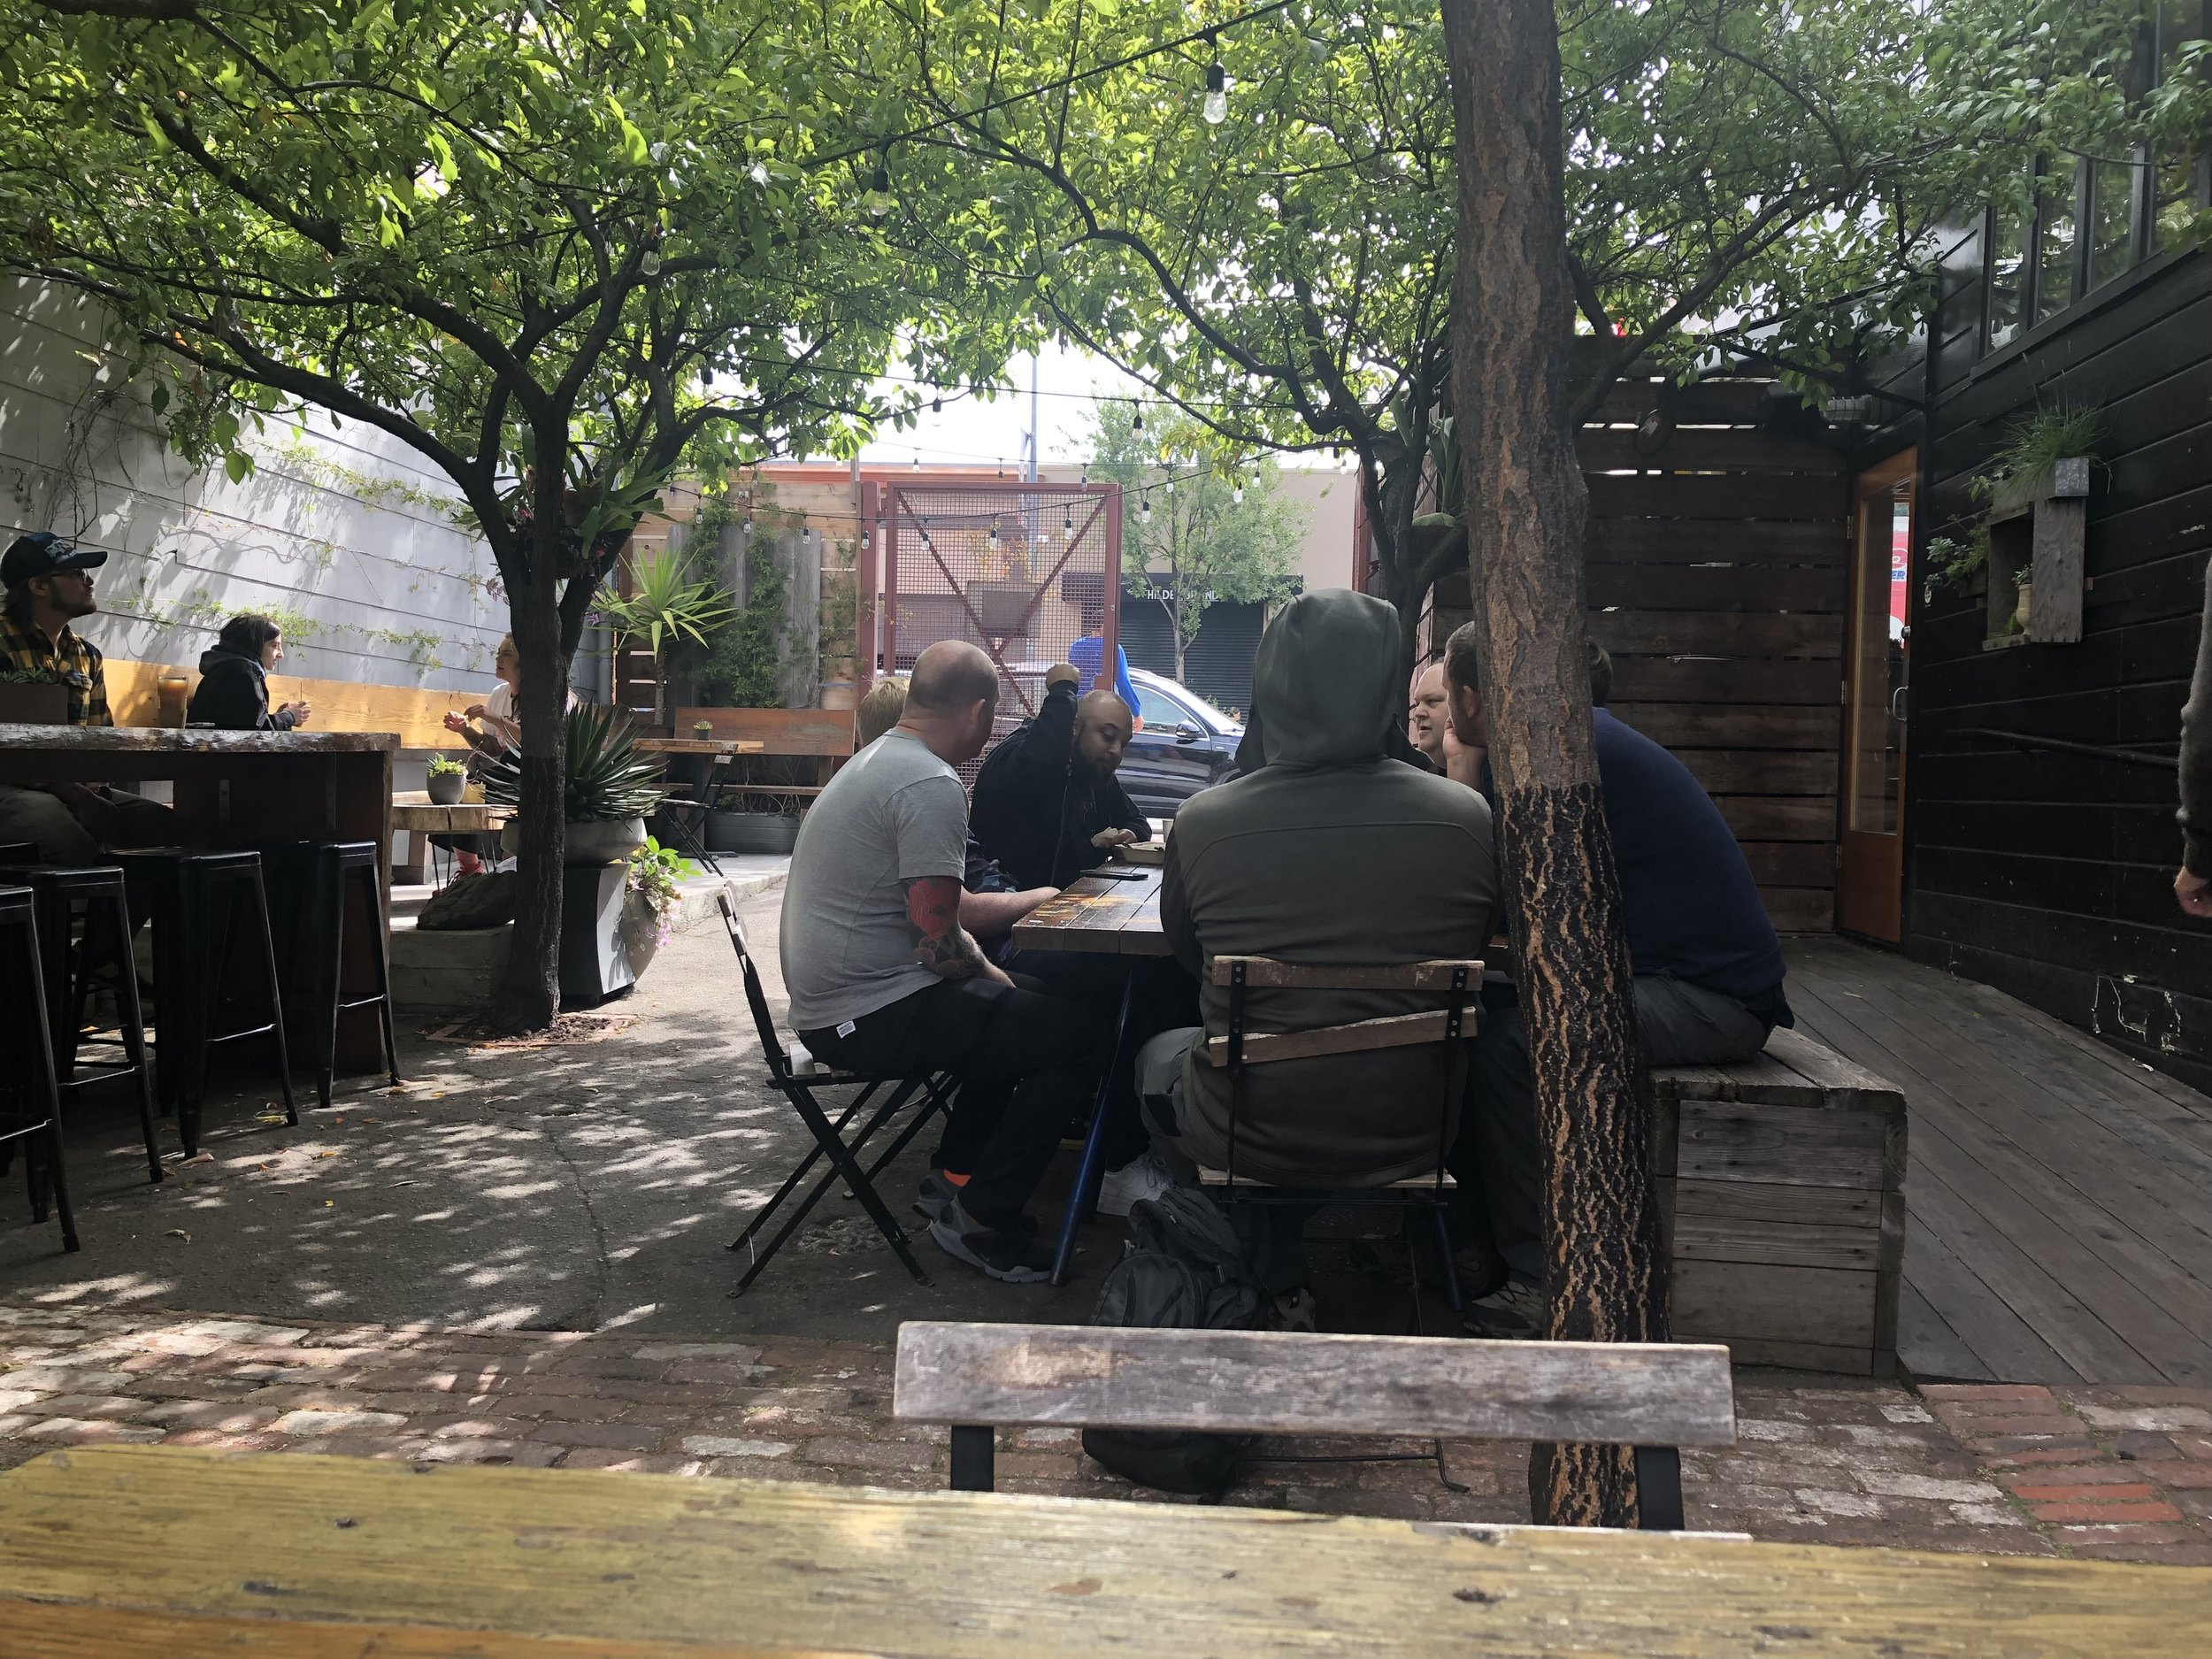 People hanging out at Stable Cafe